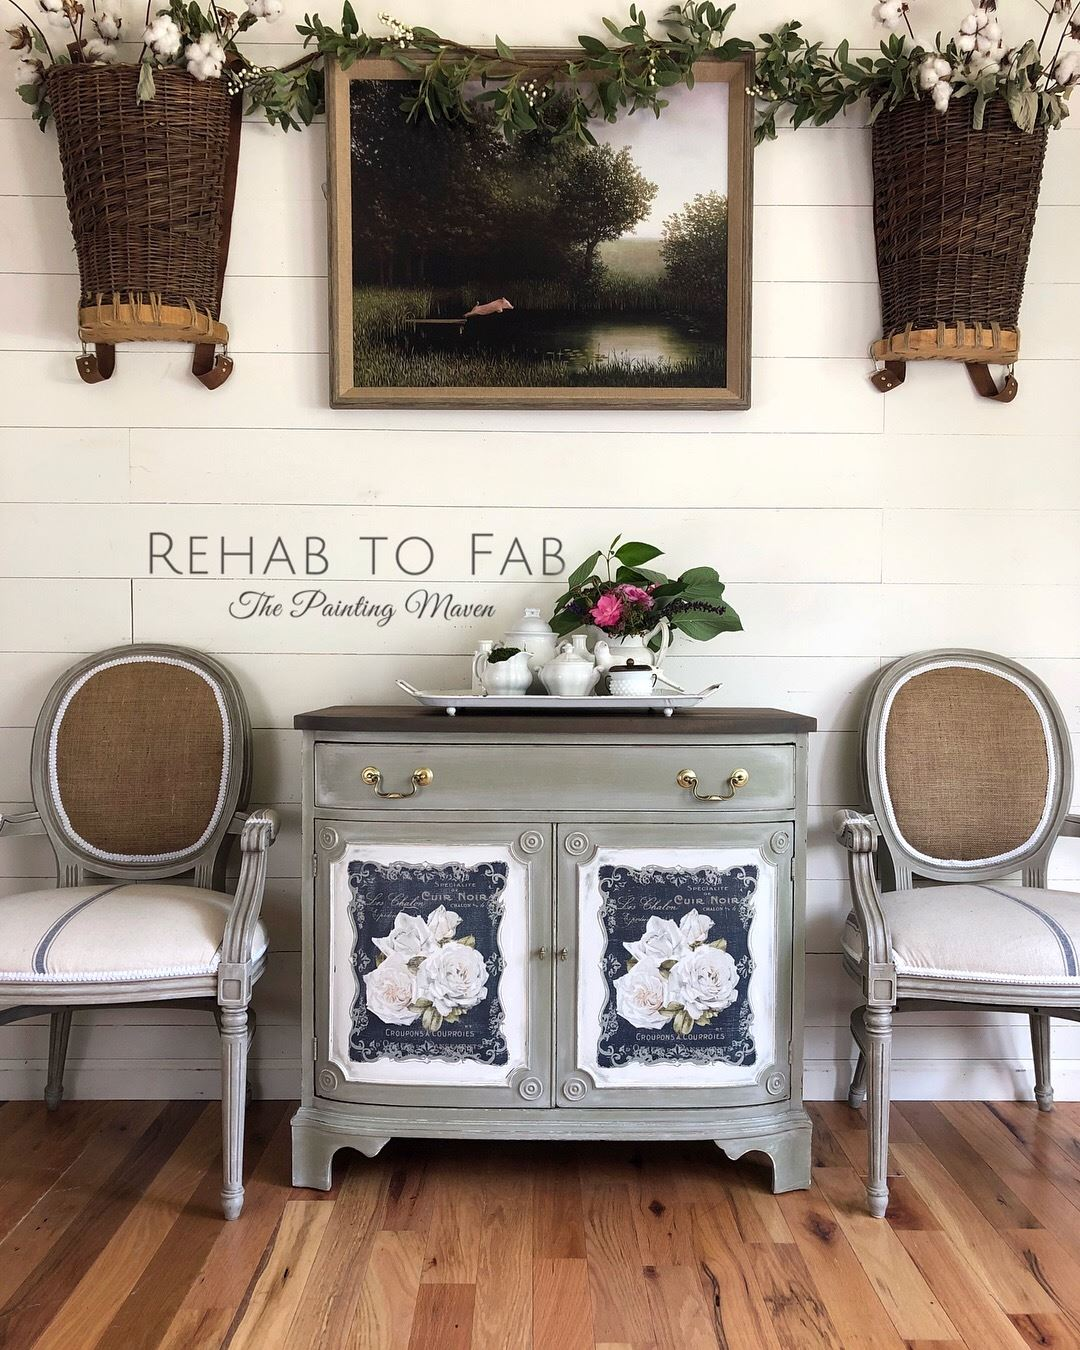 Stephanie paired these [re]design transfers with a mixture of Dixie Belle paint colors on this antique Duncan Phyfe buffet. Her classic color selections and finishes gave it new life...